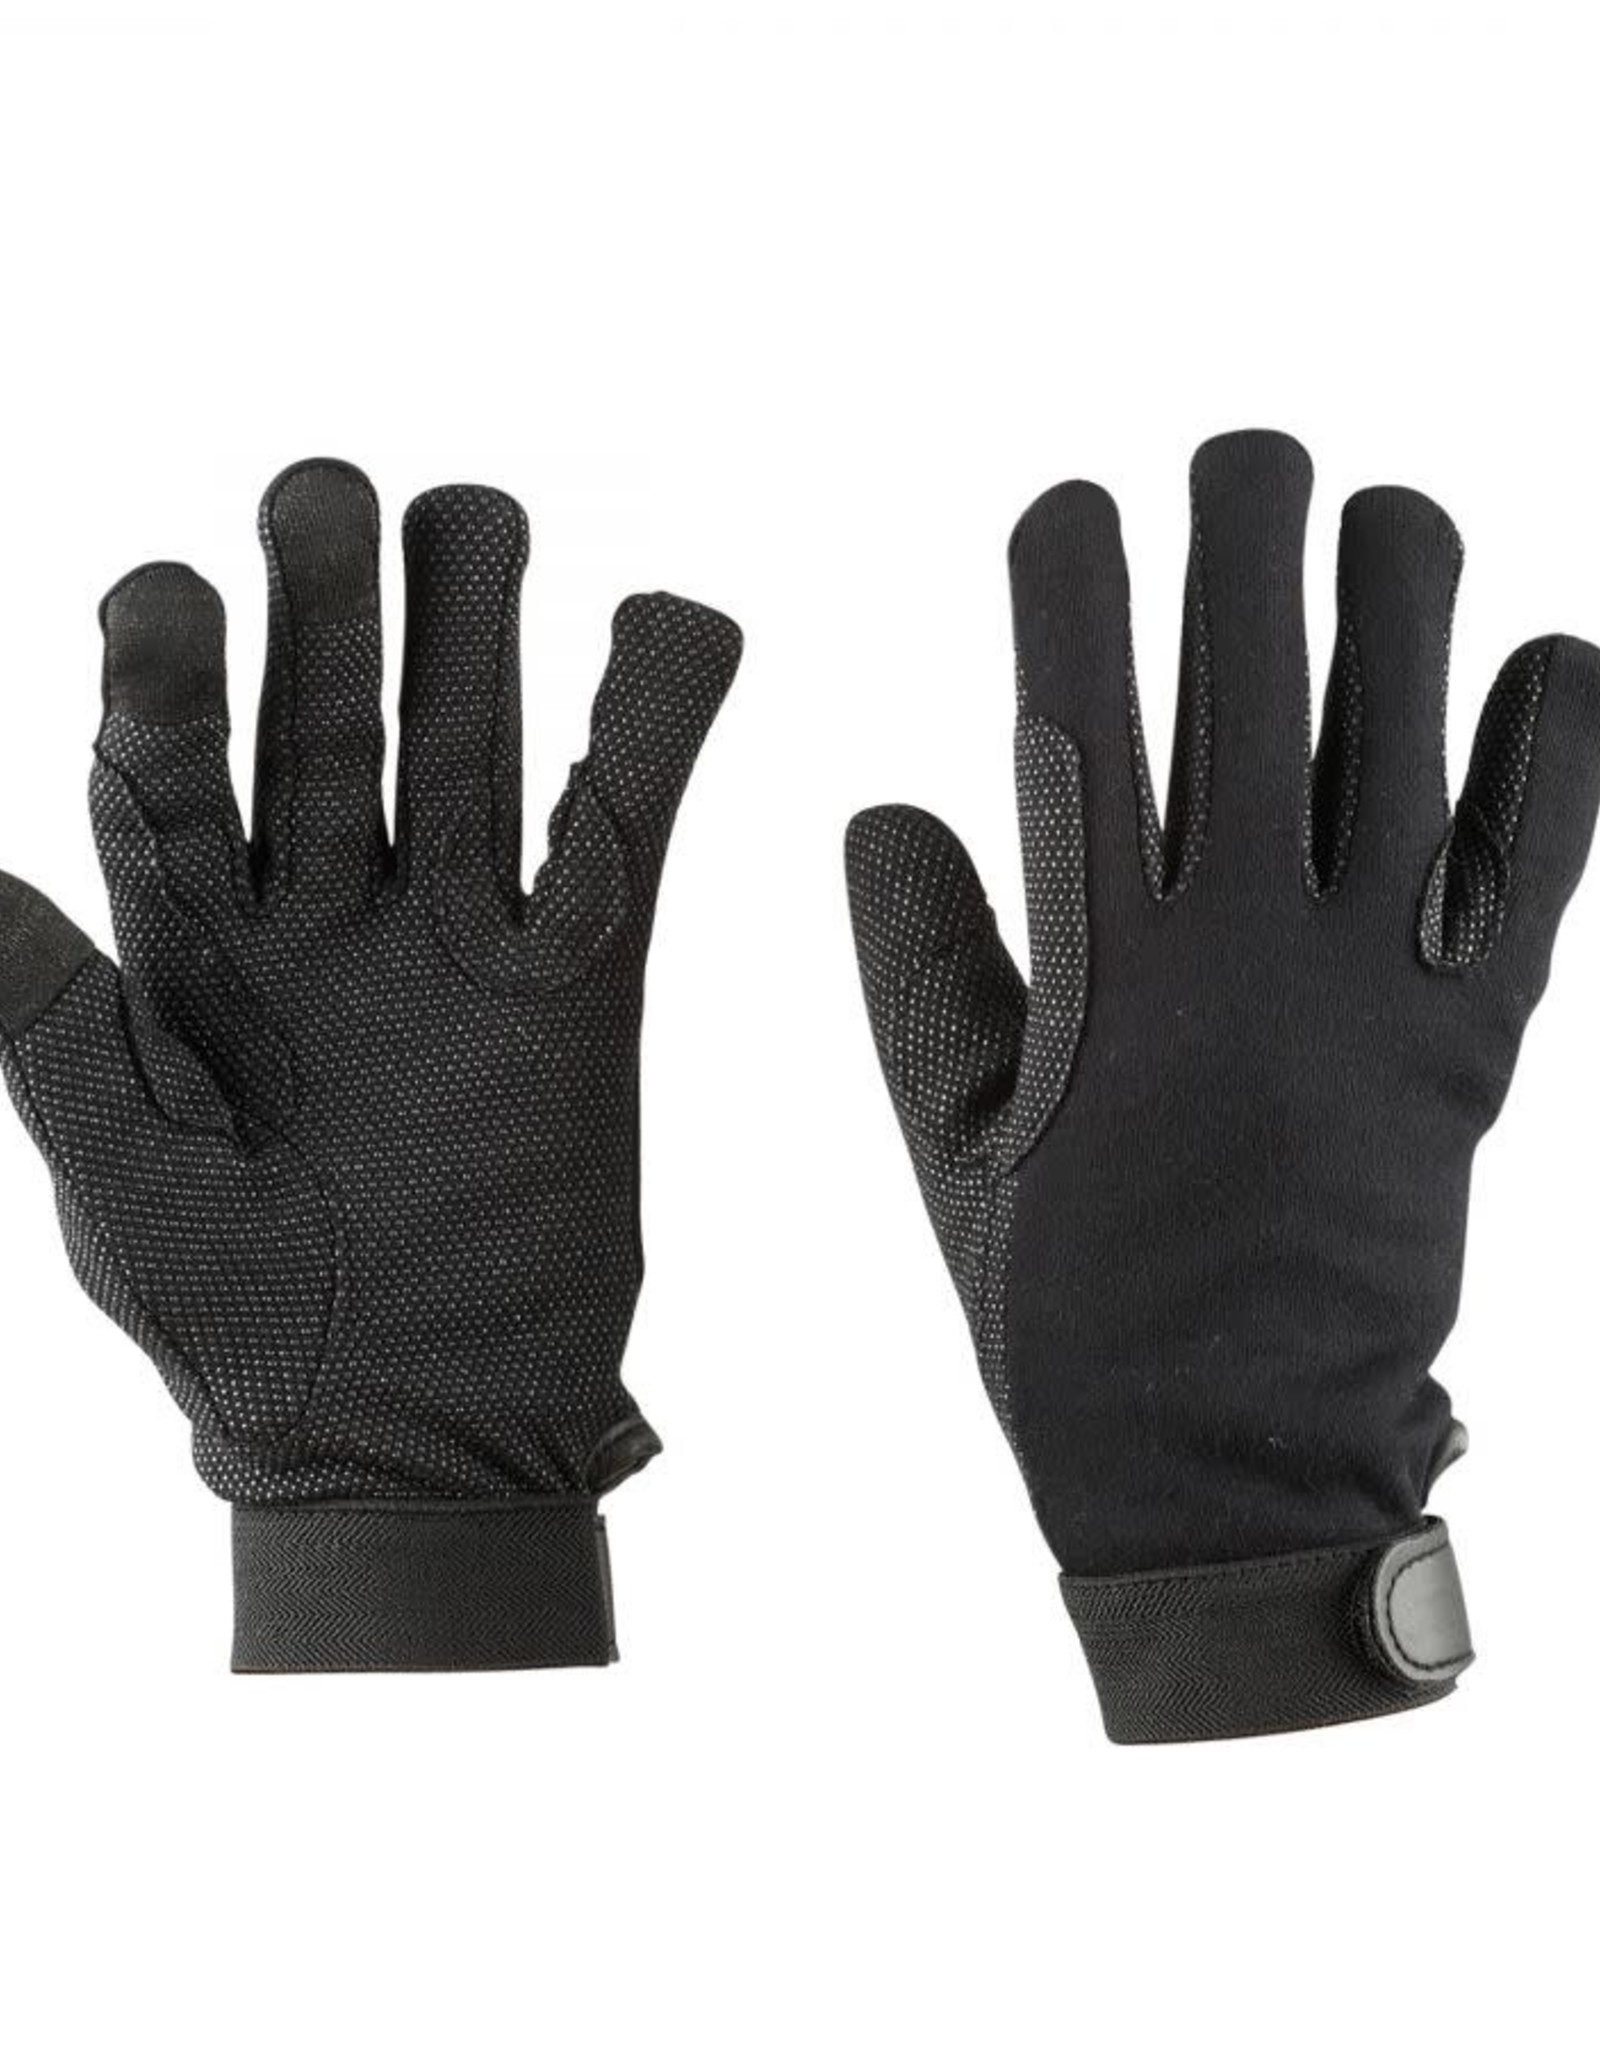 Dublin DUBLIN THINSULATE WINTER TRACK RIDING GLOVES BLACK ADULTS MEDIUM